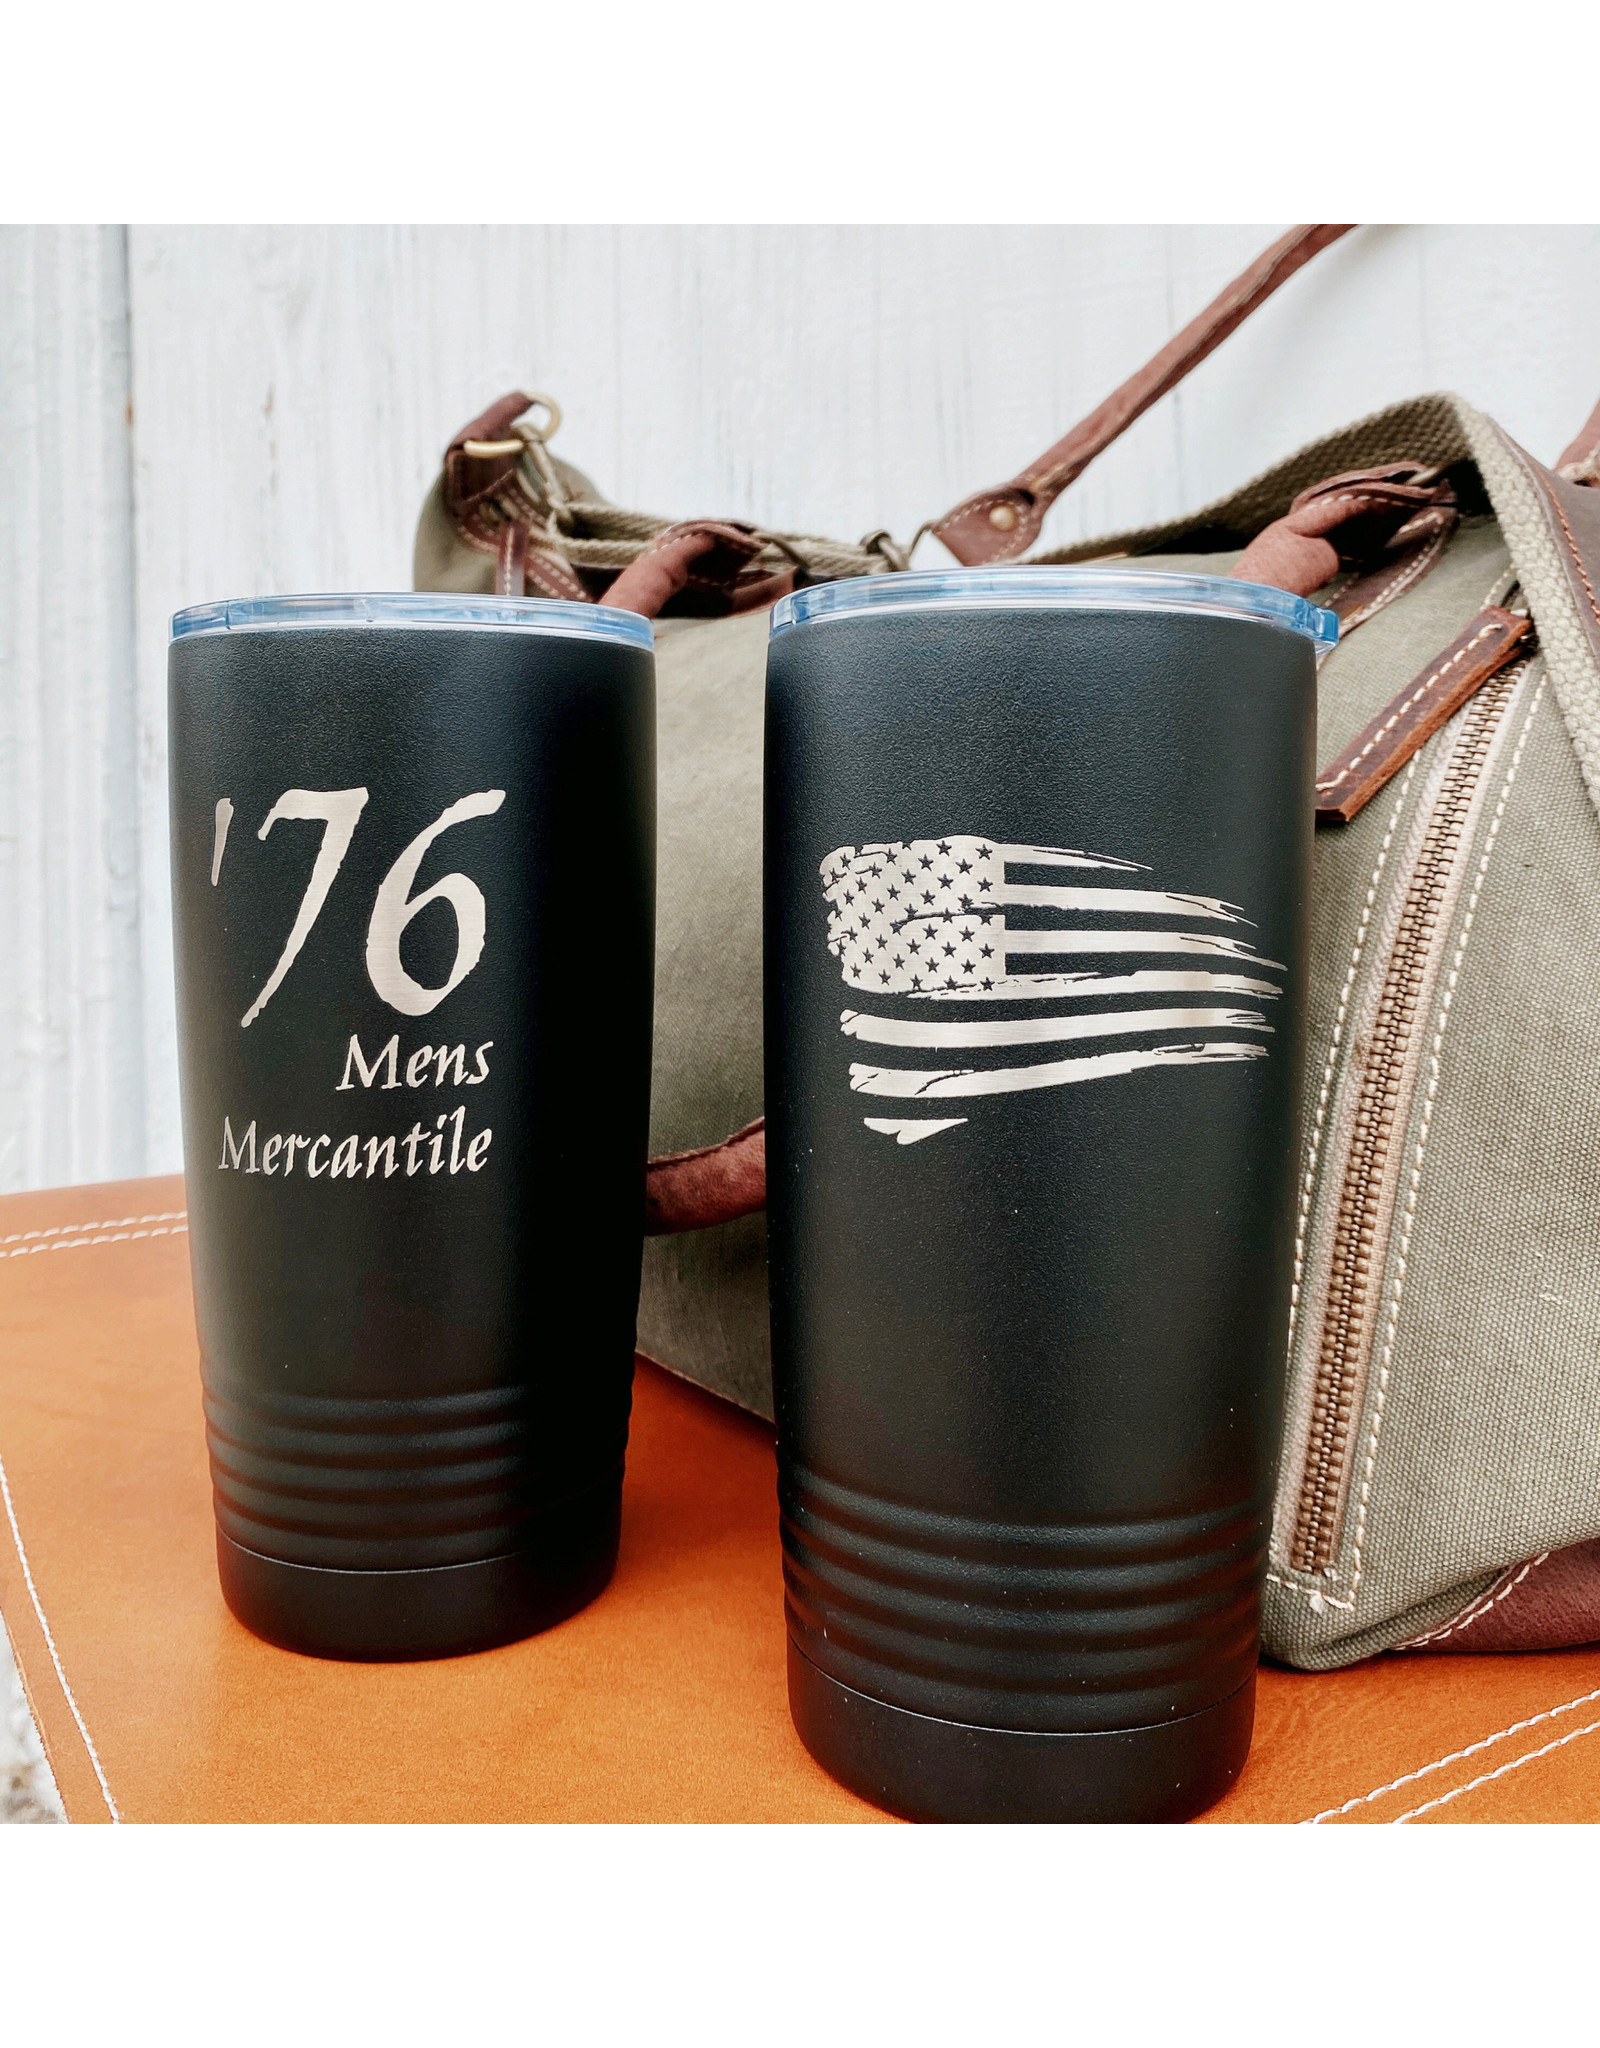 '76 Mens Mercantile '76 Black Insulated Cup 20 oz